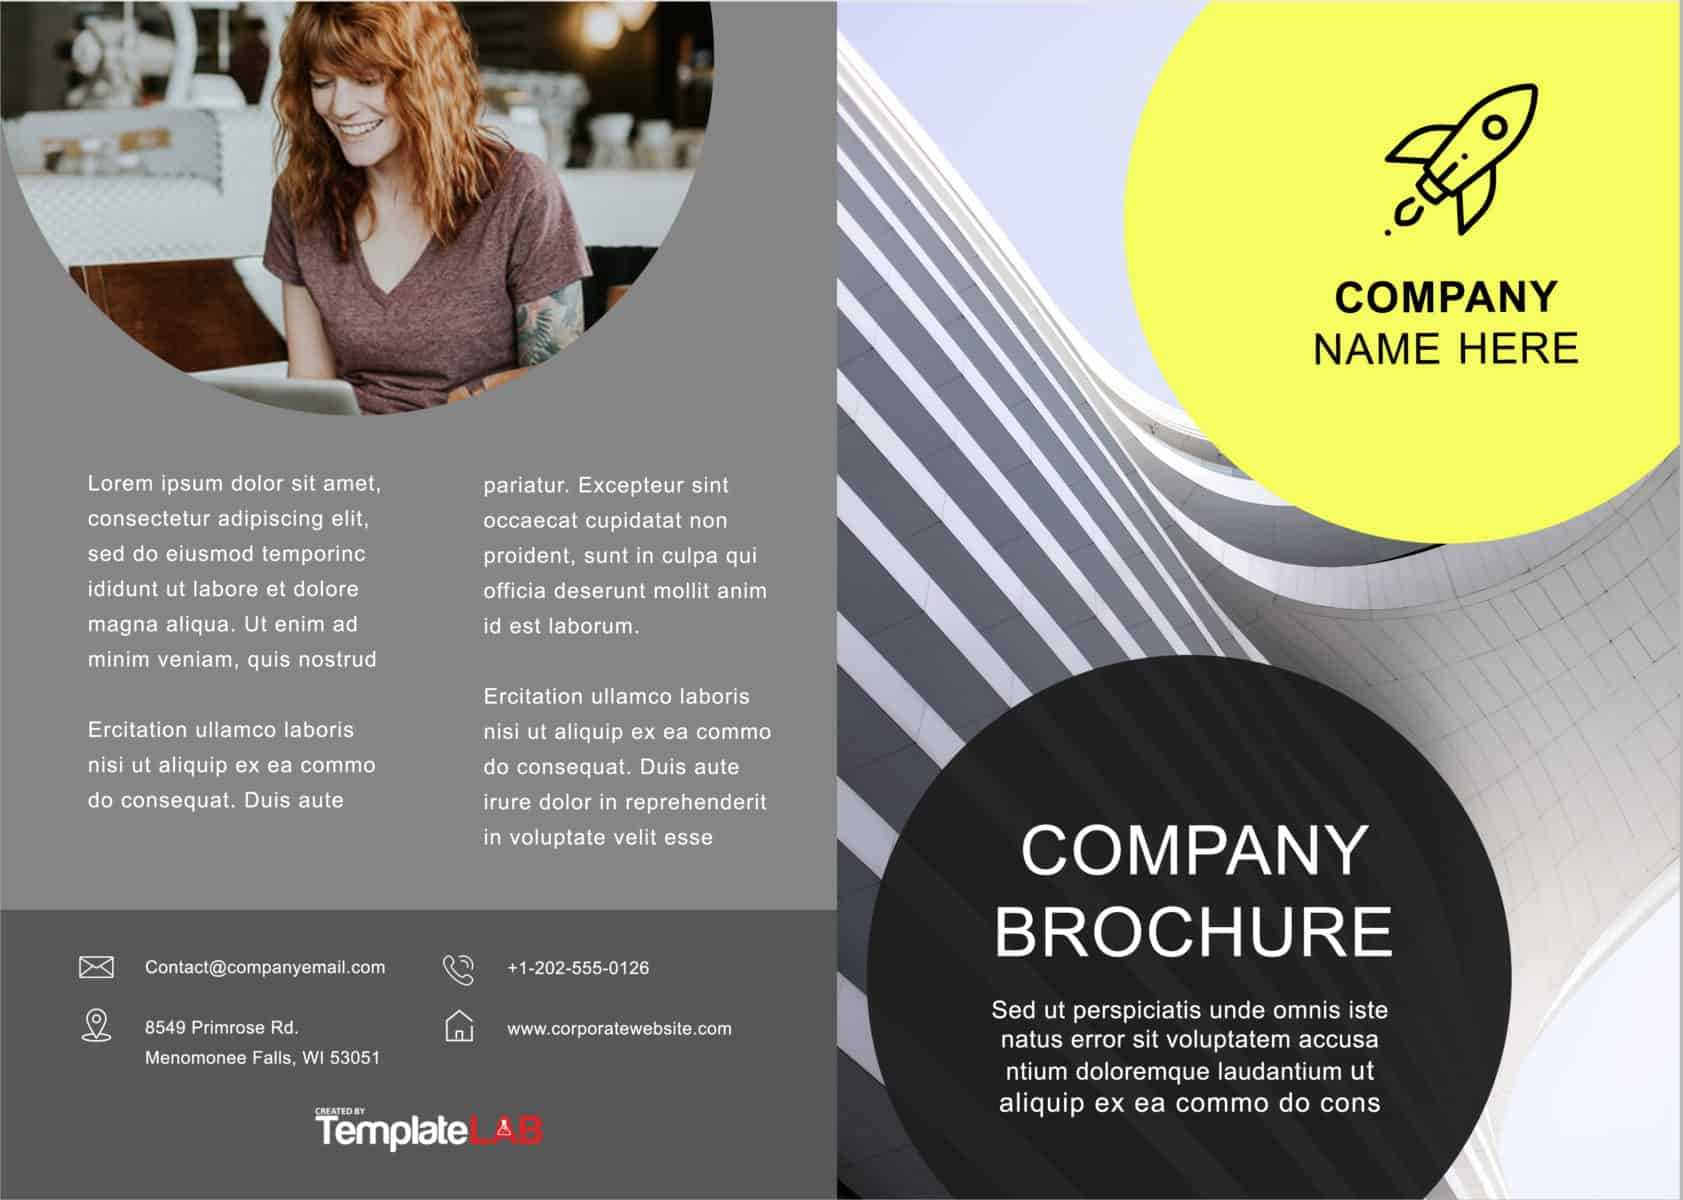 33 Free Brochure Templates (Word + Pdf) ᐅ Templatelab For Product Brochure Template Free